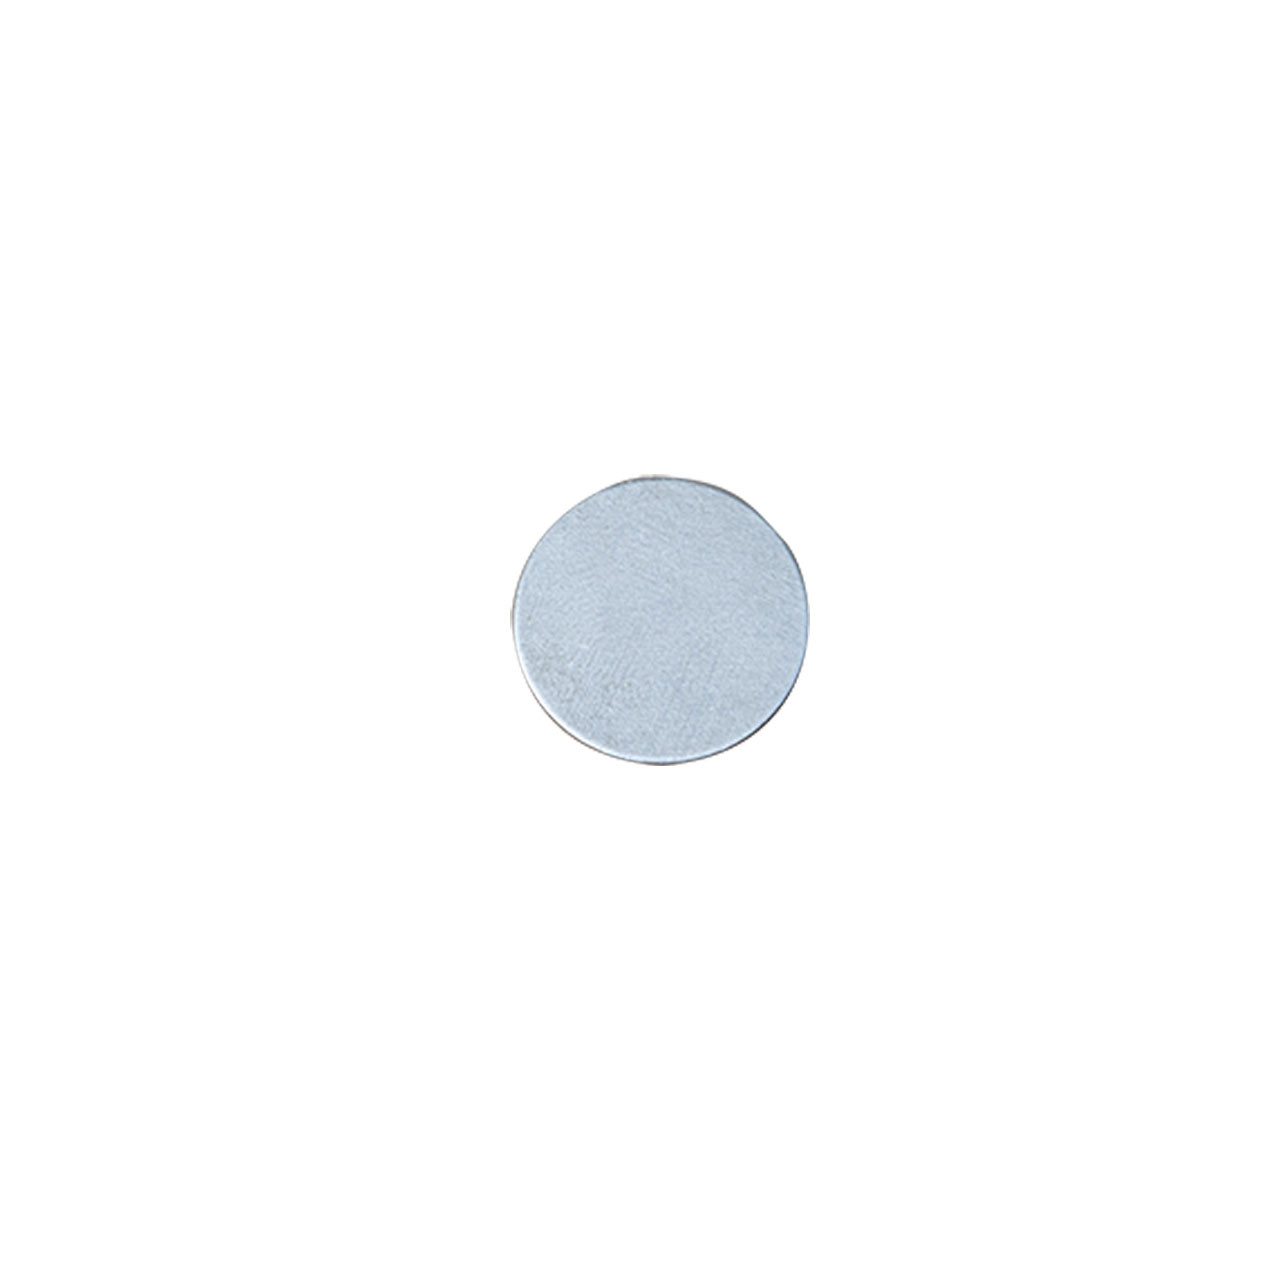 Washer Blanks - 19mm